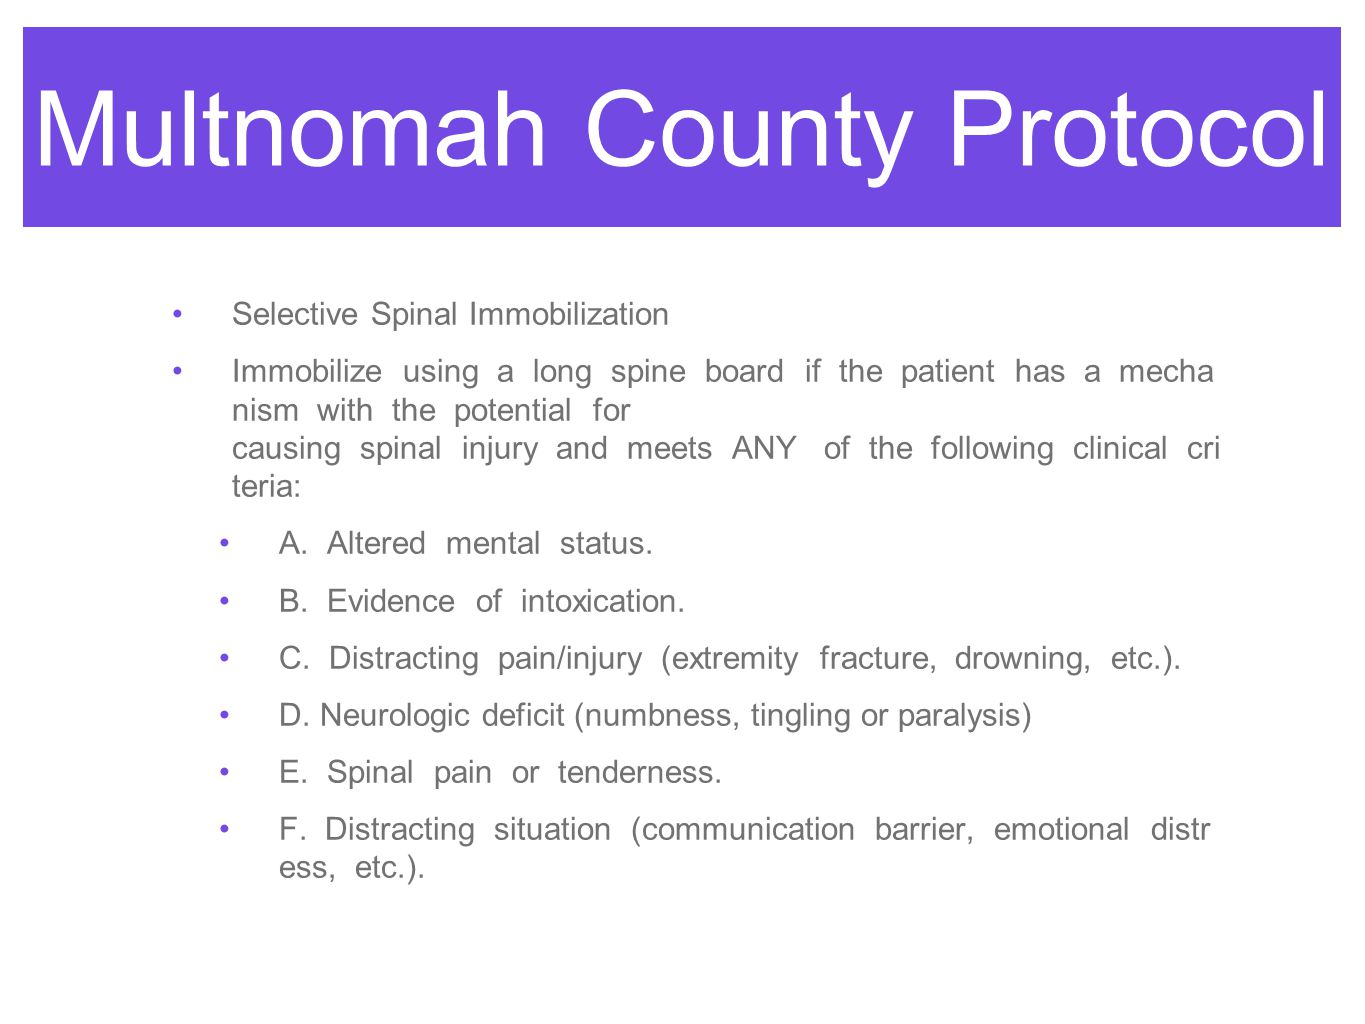 Multnomah County Protocol Selective Spinal Immobilization Immobilize using a long spine board if the patient has a mecha nism with the potential for c